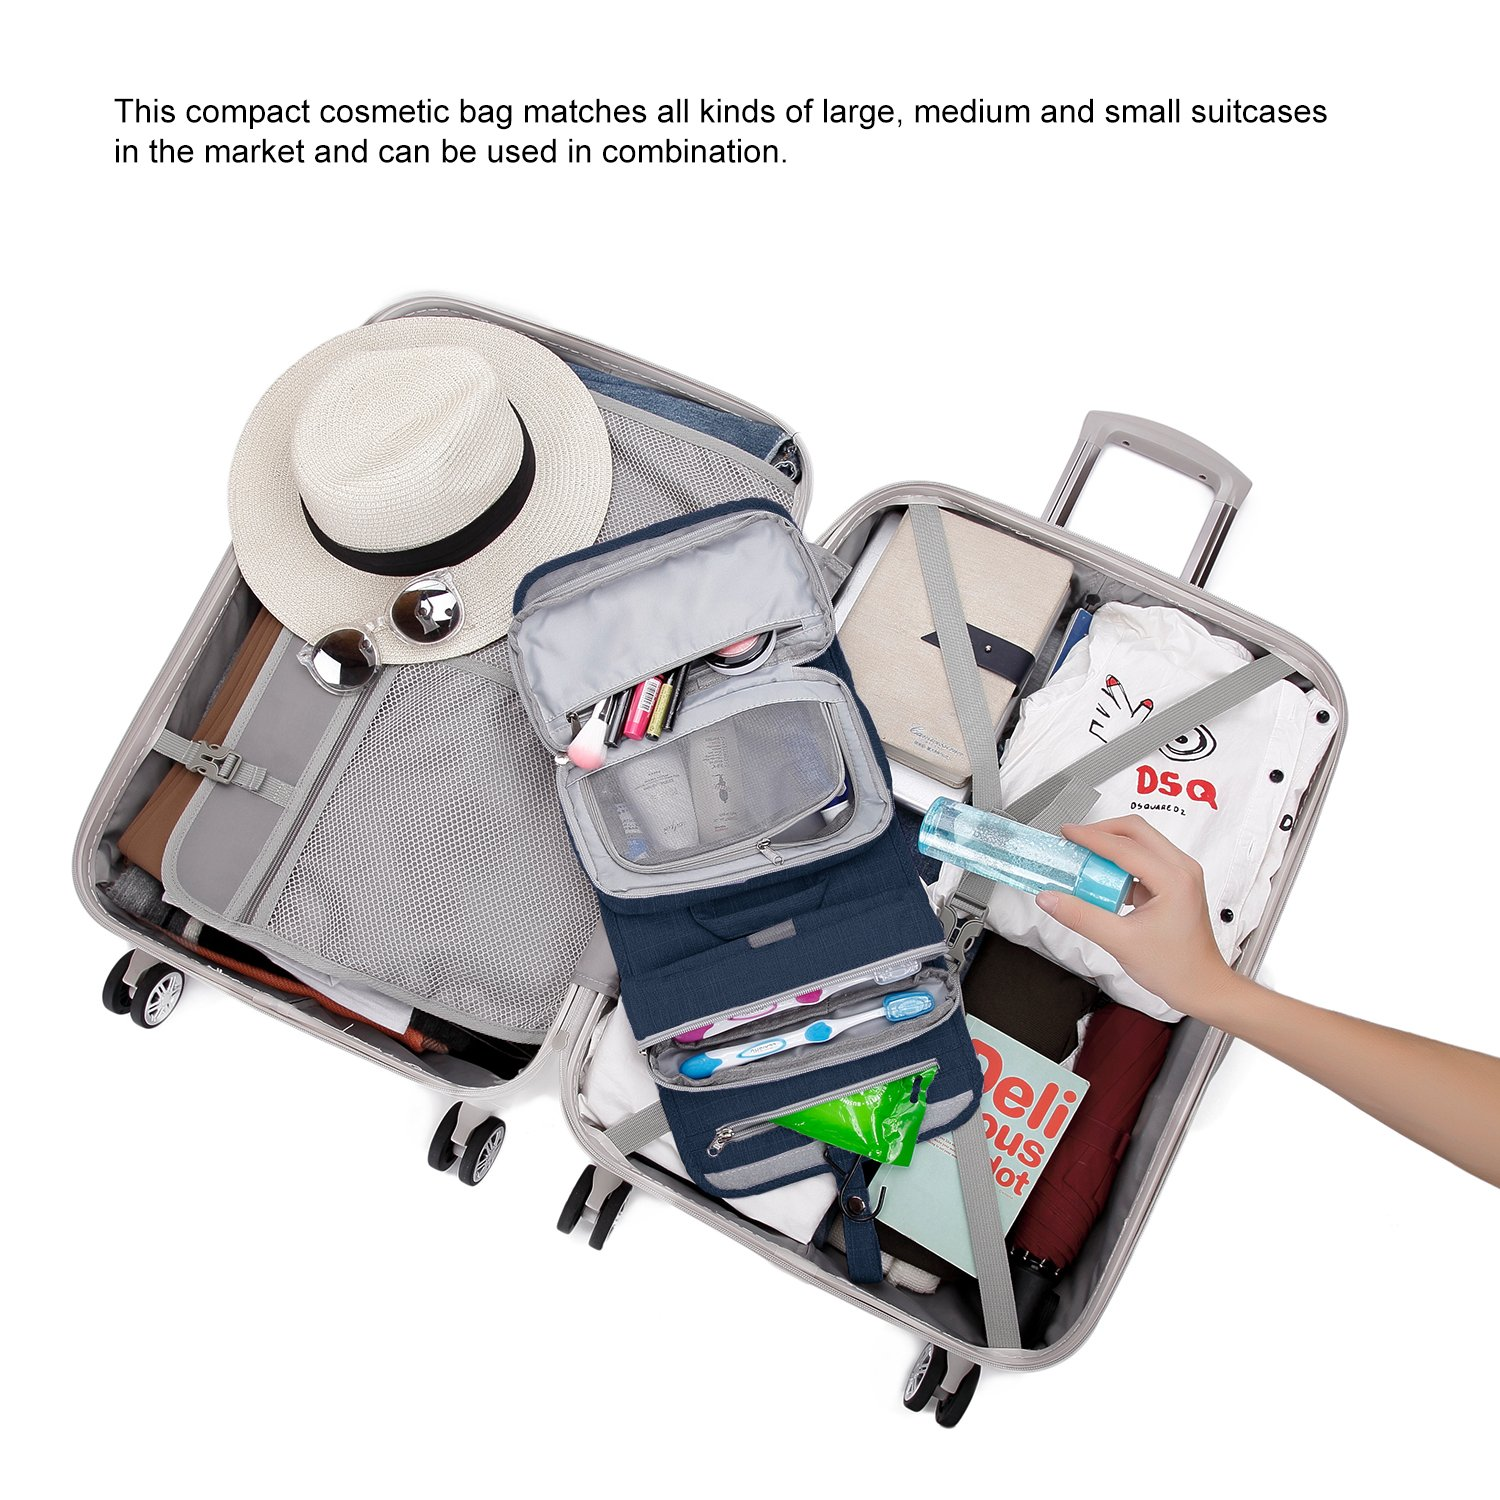 Mountaintop Hanging Travel Toiletry Bag, 7.1 x 2.4 x 9.3-Inch For Men & Women by Mountaintop (Image #8)